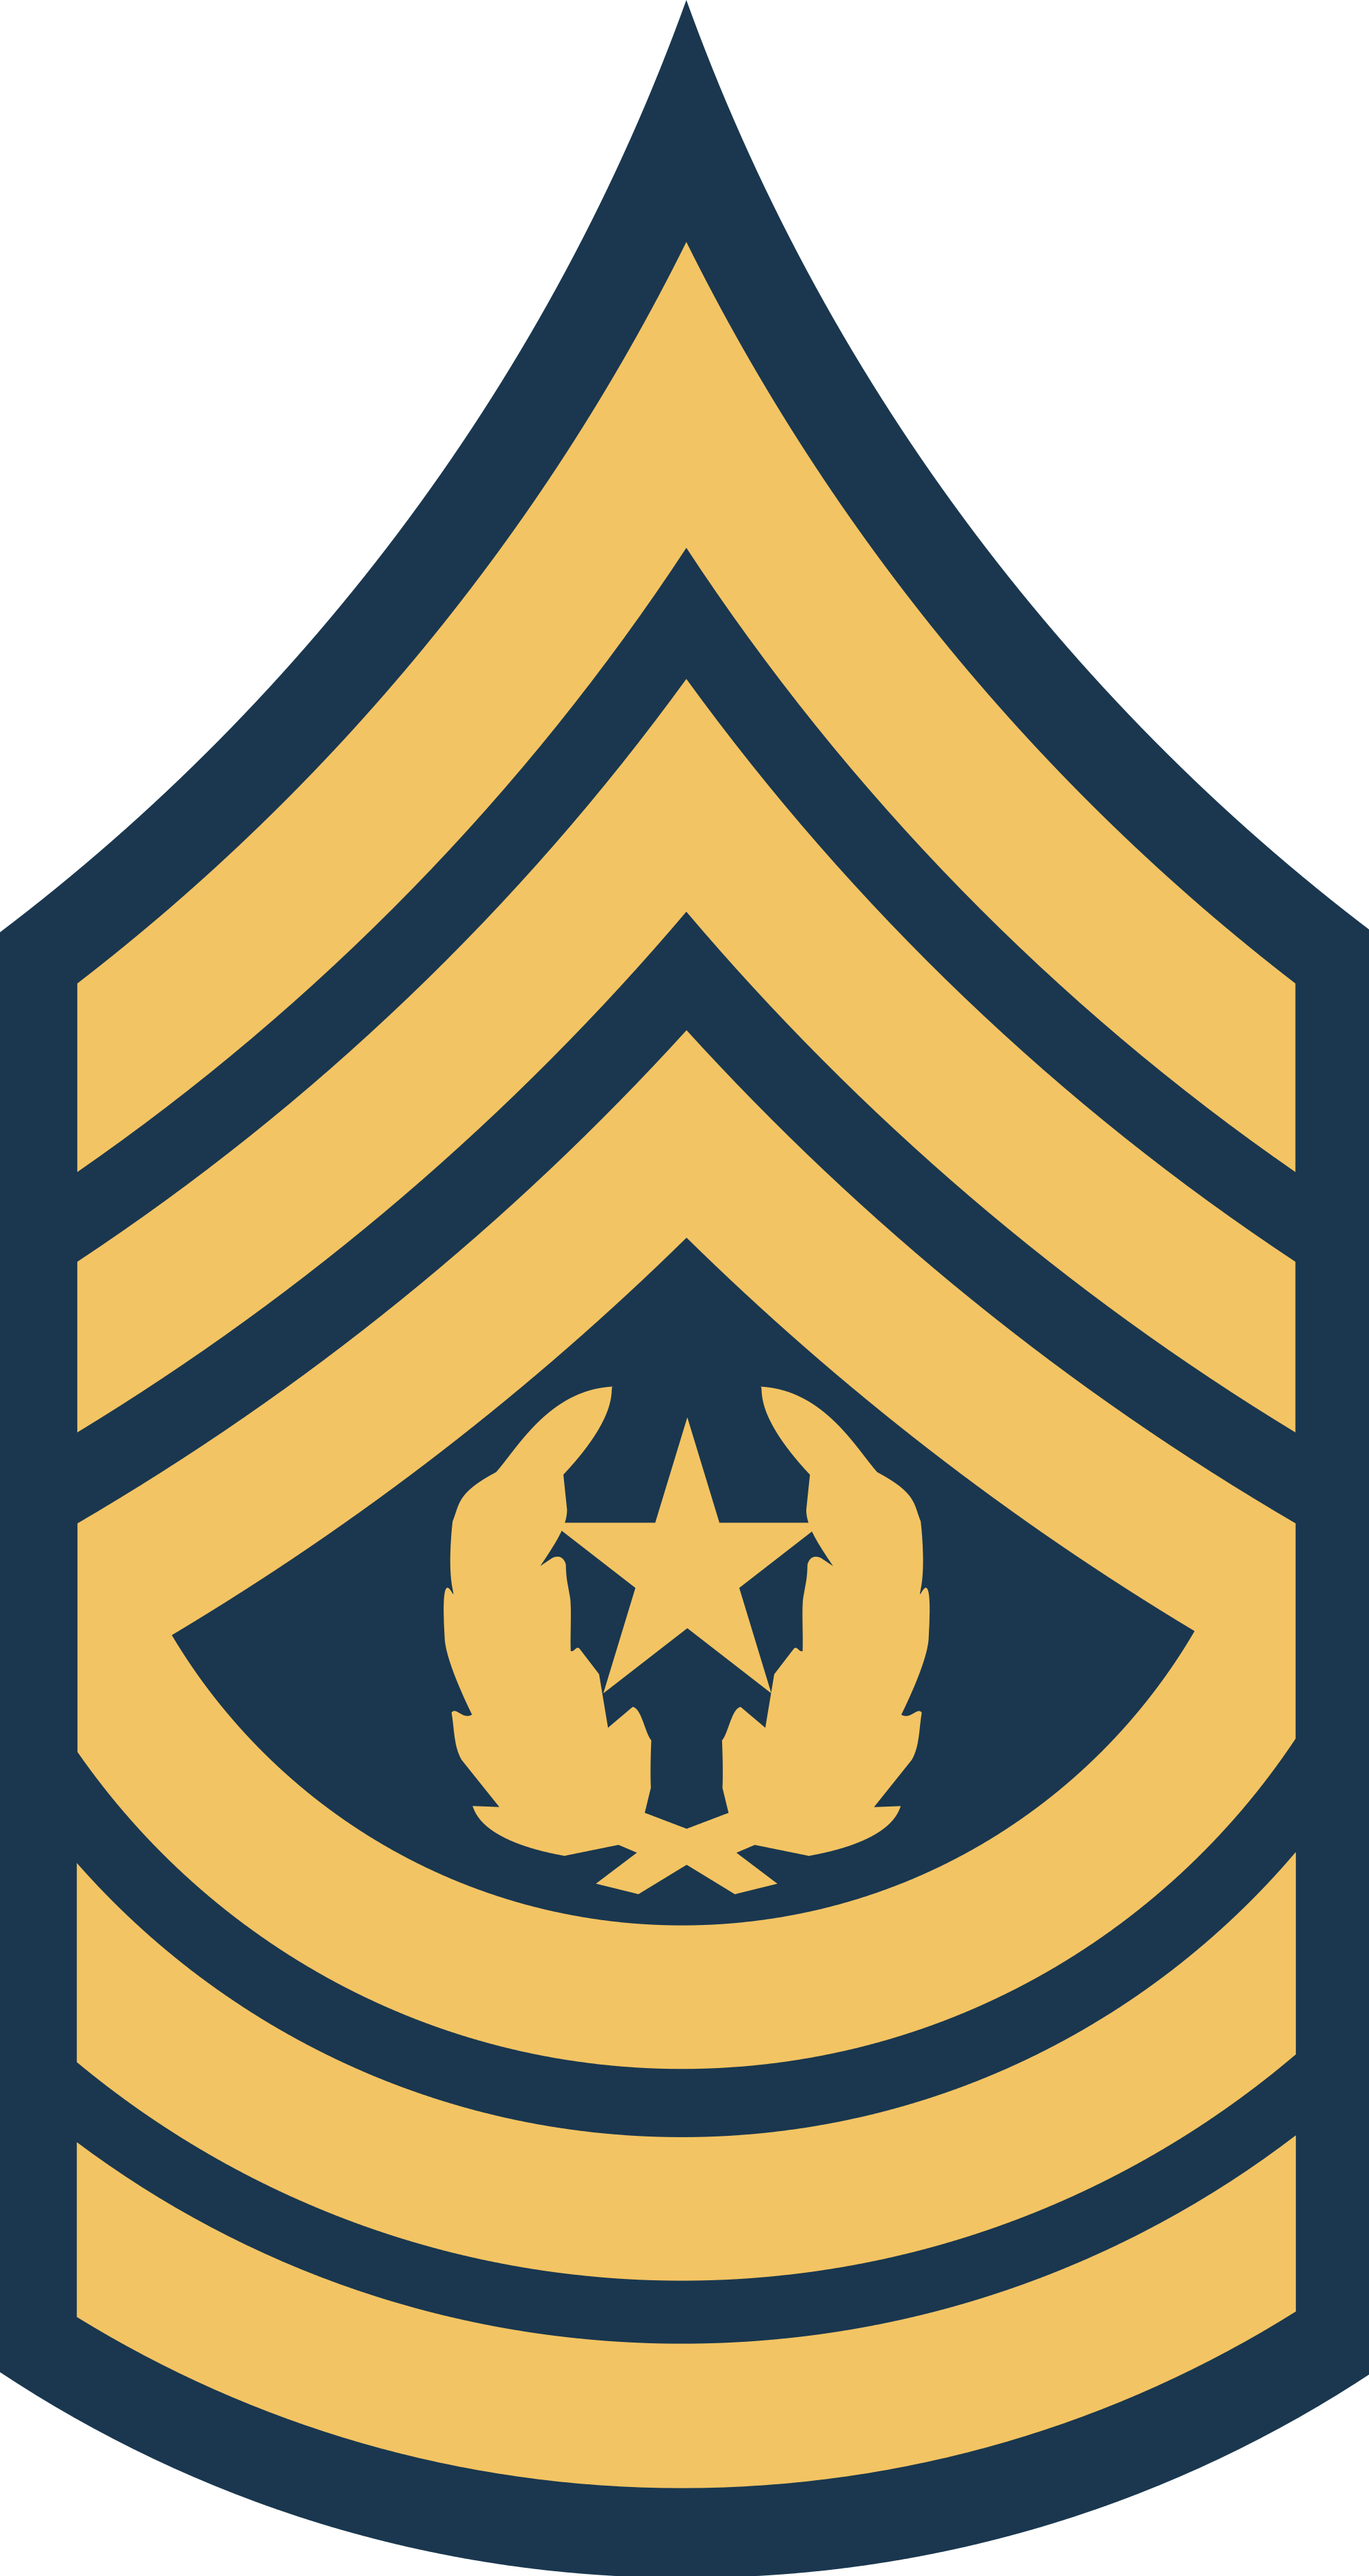 Army Csm Rank PNG Transparent Army Csm Rank.PNG Images.